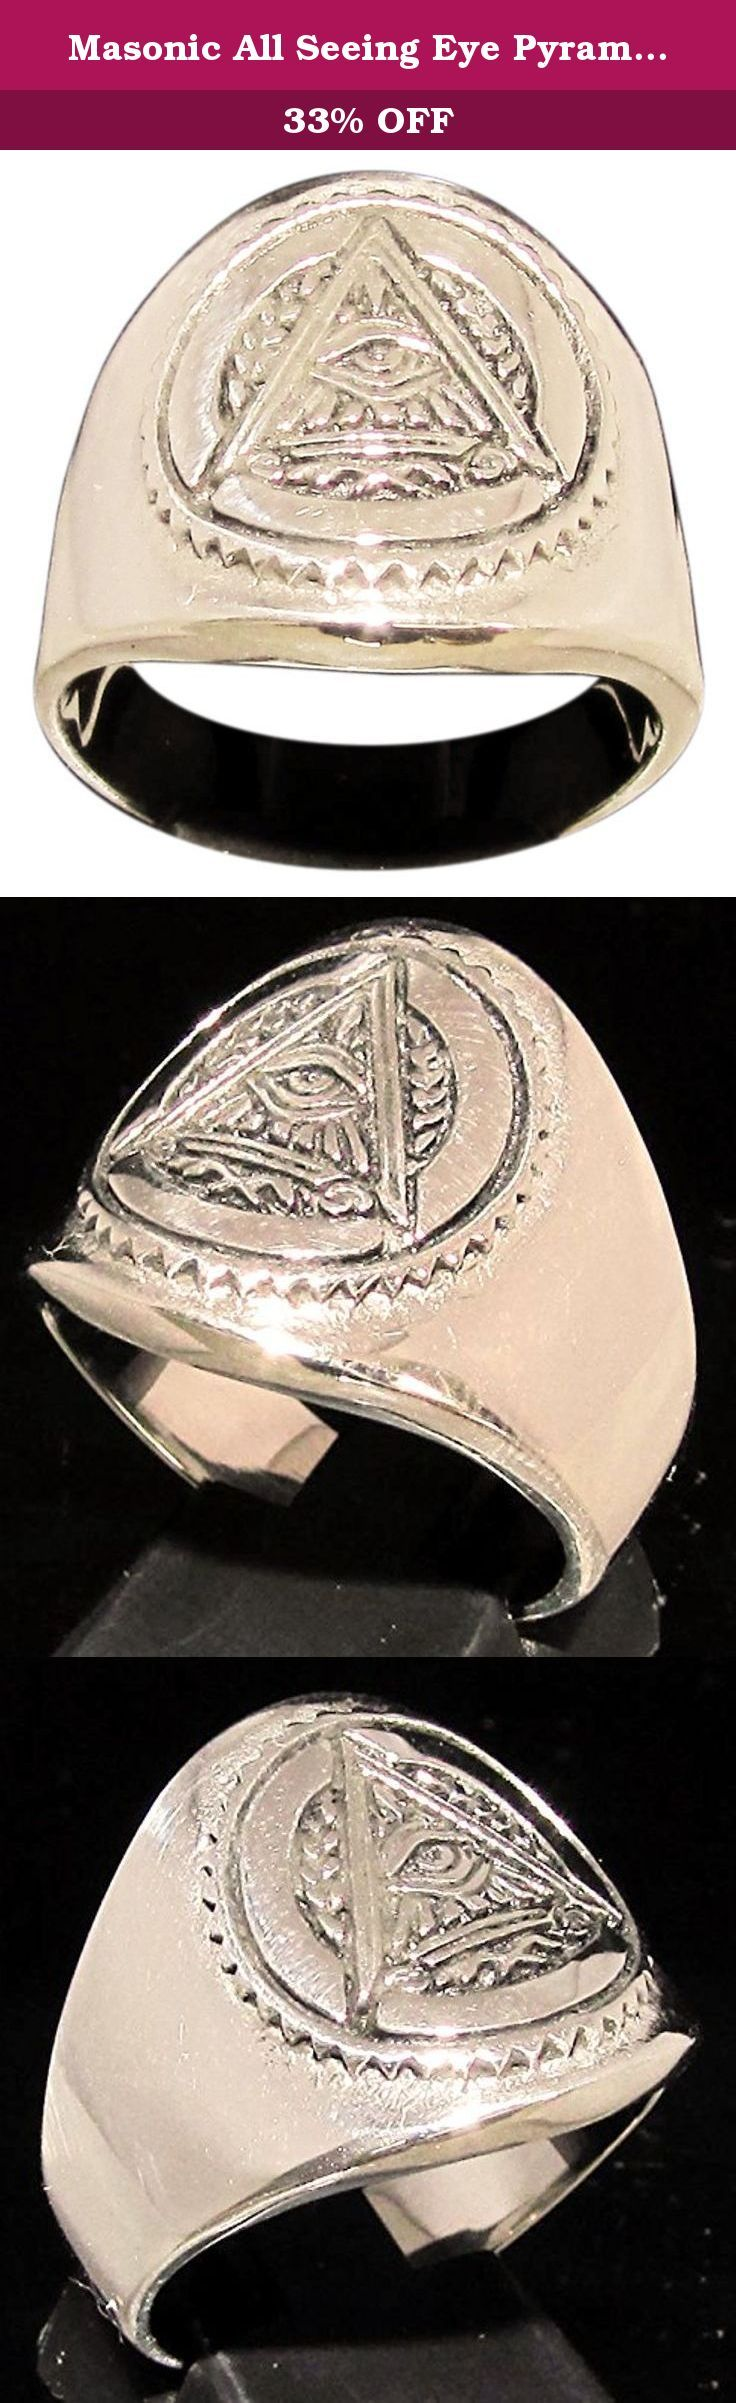 Masonic All Seeing Eye Pyramid Ring Illuminati Freemason Symbol in Bronze - Size 12.5. A unique design, hand crafted and highly detailed. This ring is solid bronze but shines like gold. The Process First, the ring is carefully carved out of wax which is then used to form a plaster mold. Next, castings can be made with molten metal, ie. sterling silver and bronze. Then are the final stages of hand polishing and thorough quality checks. Sizing: Although it can sometimes be difficult to...